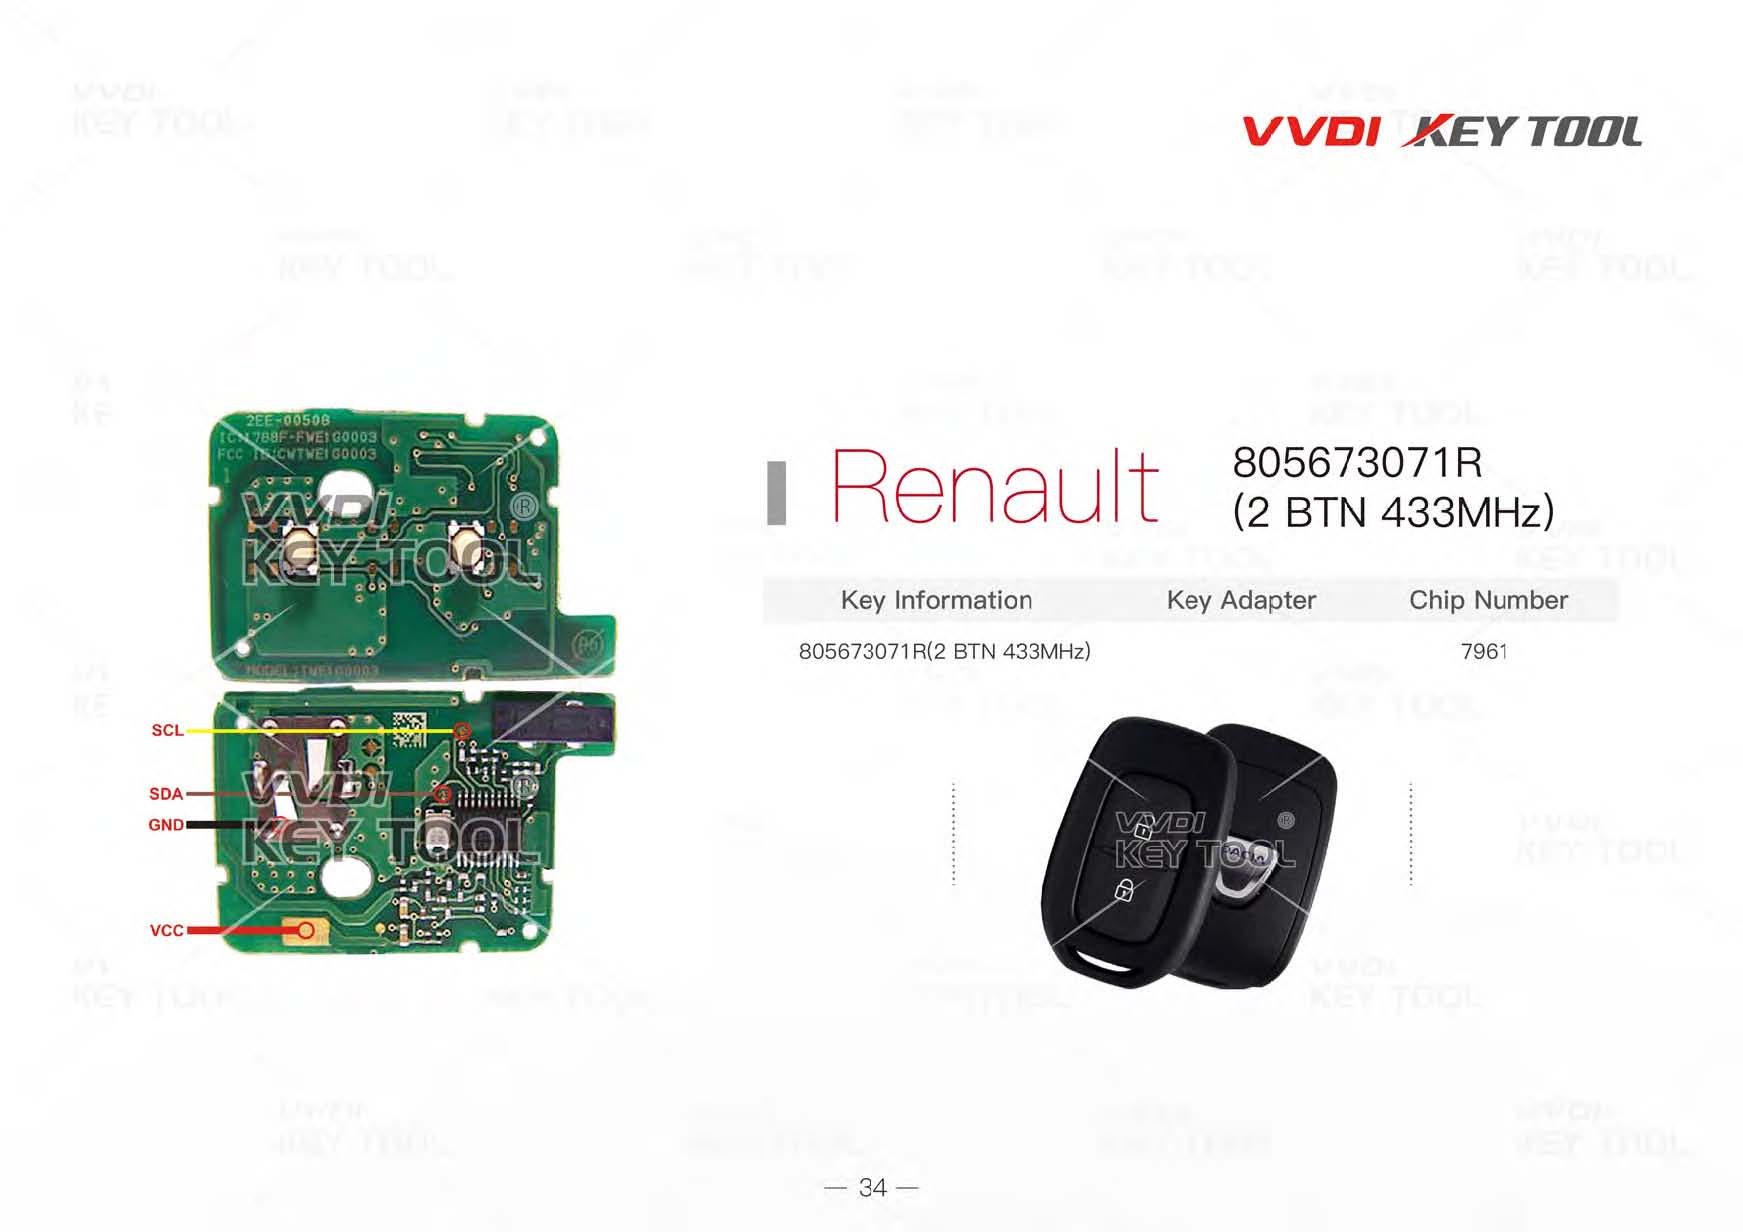 vvdi-key-tool-renew-diagram-34